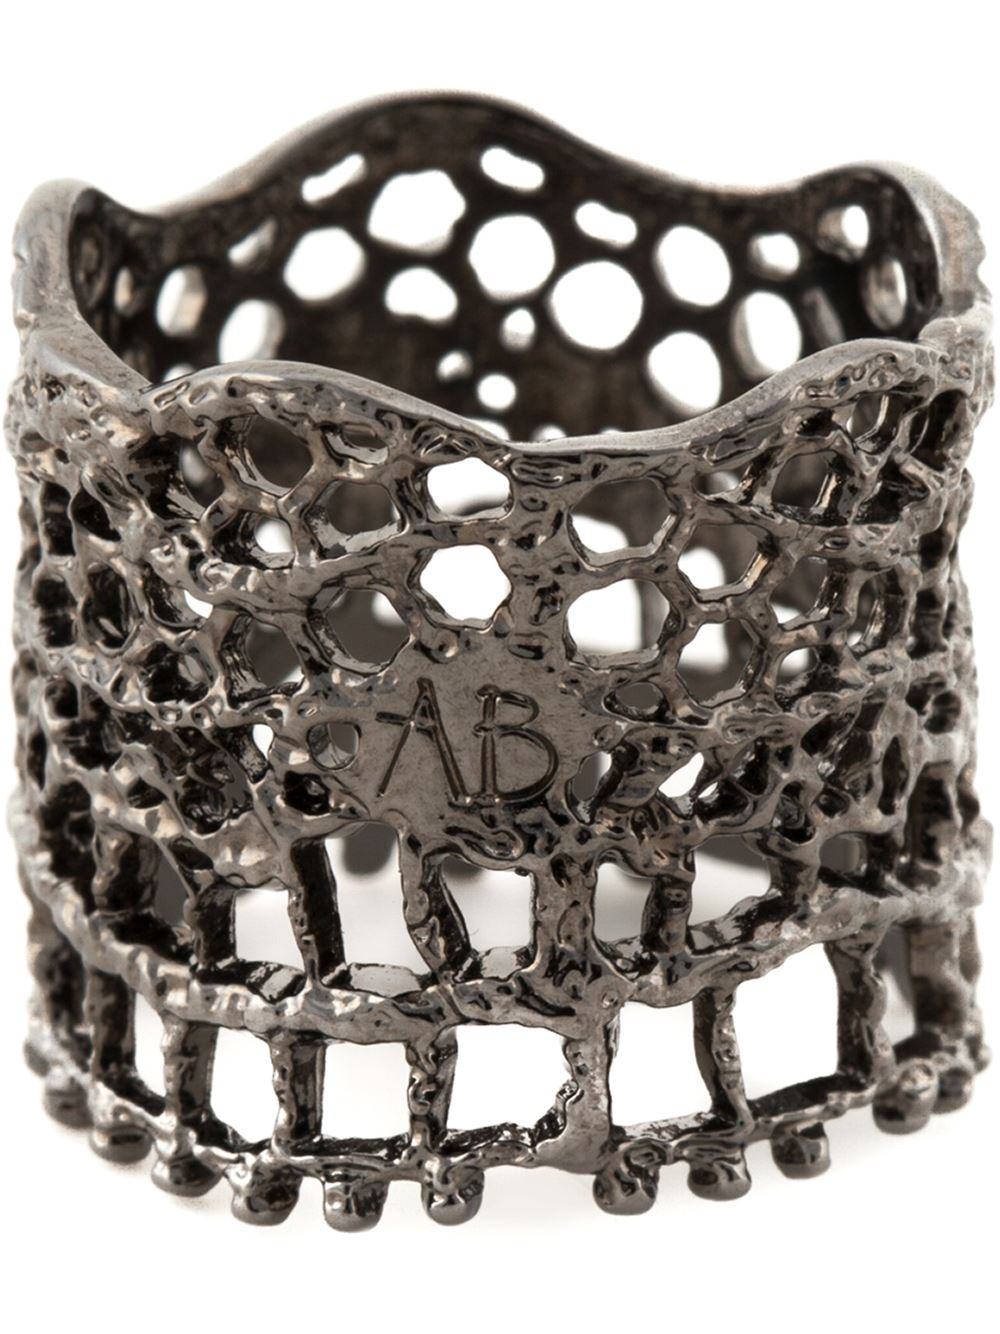 Aurelie Bidermann Vintage Lace ring | Shop Heaven Has Heels